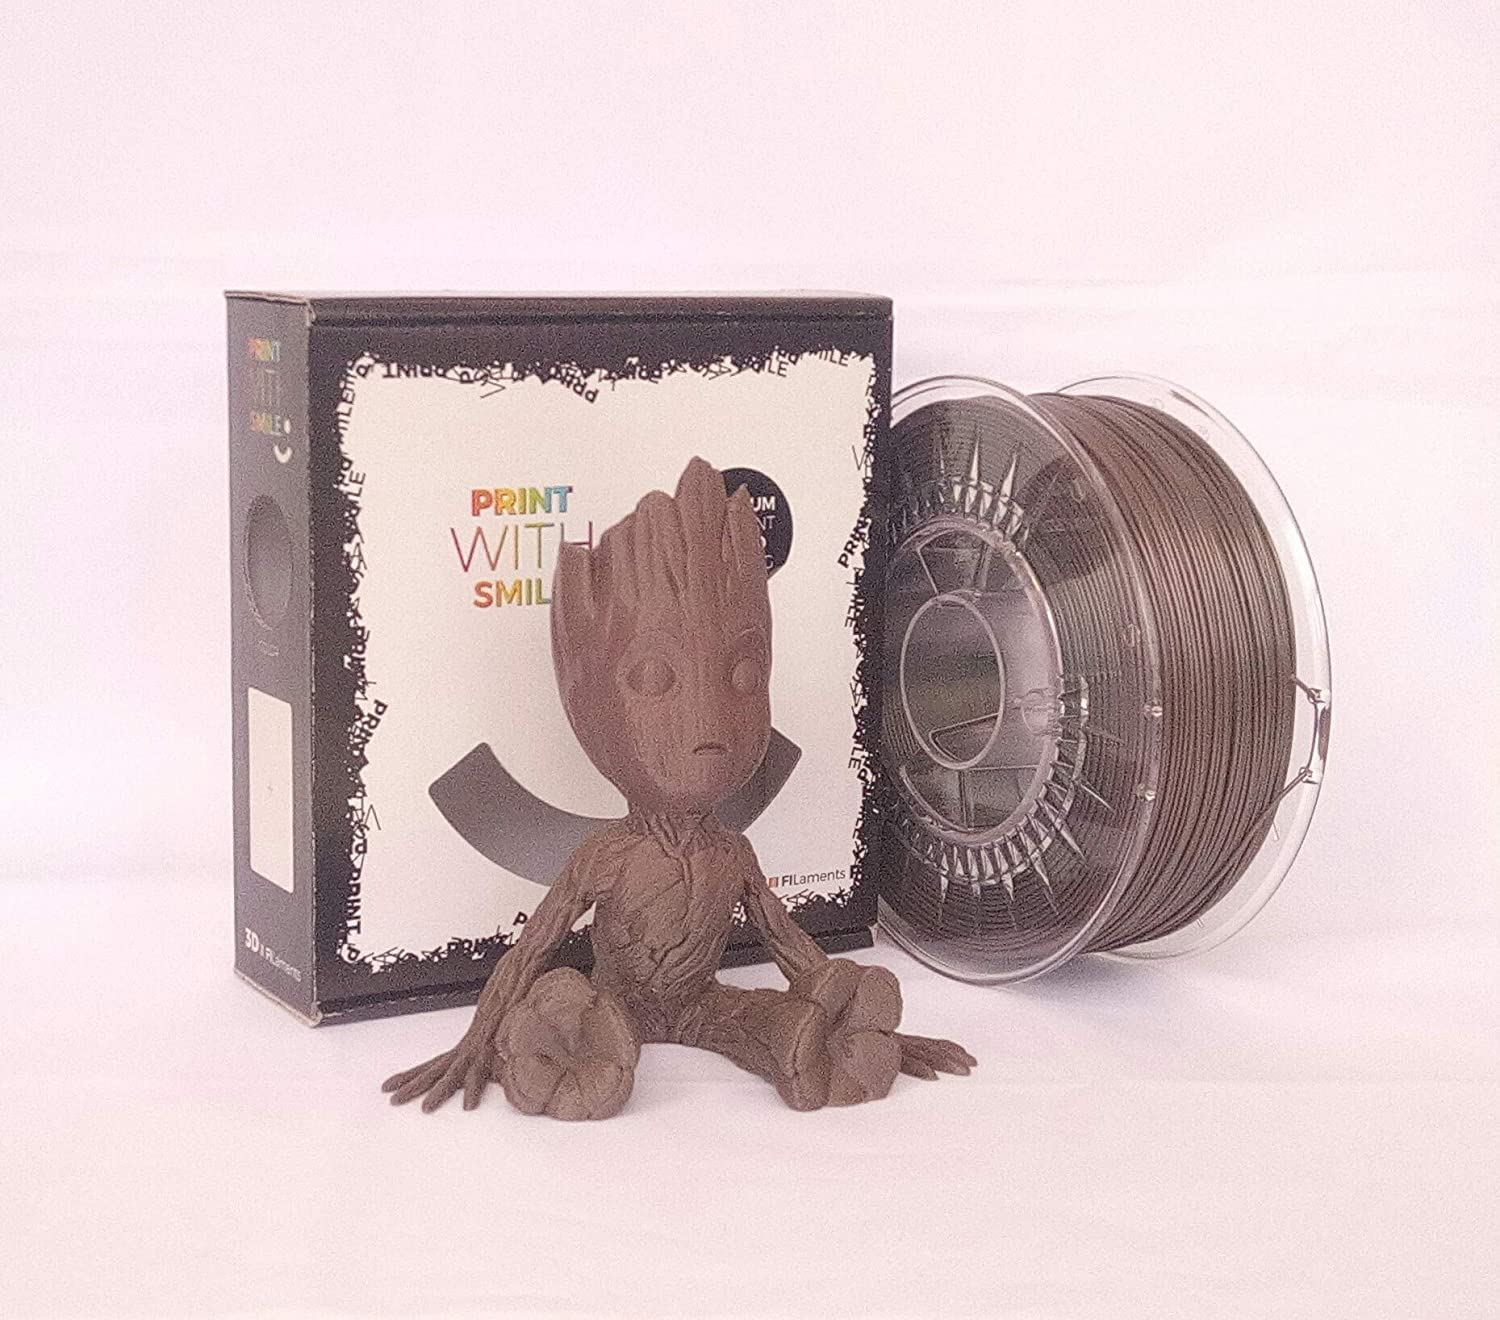 Printed With Smile - Filamento 3D PLA, 1,75 mm, 500 g, 500 g ...